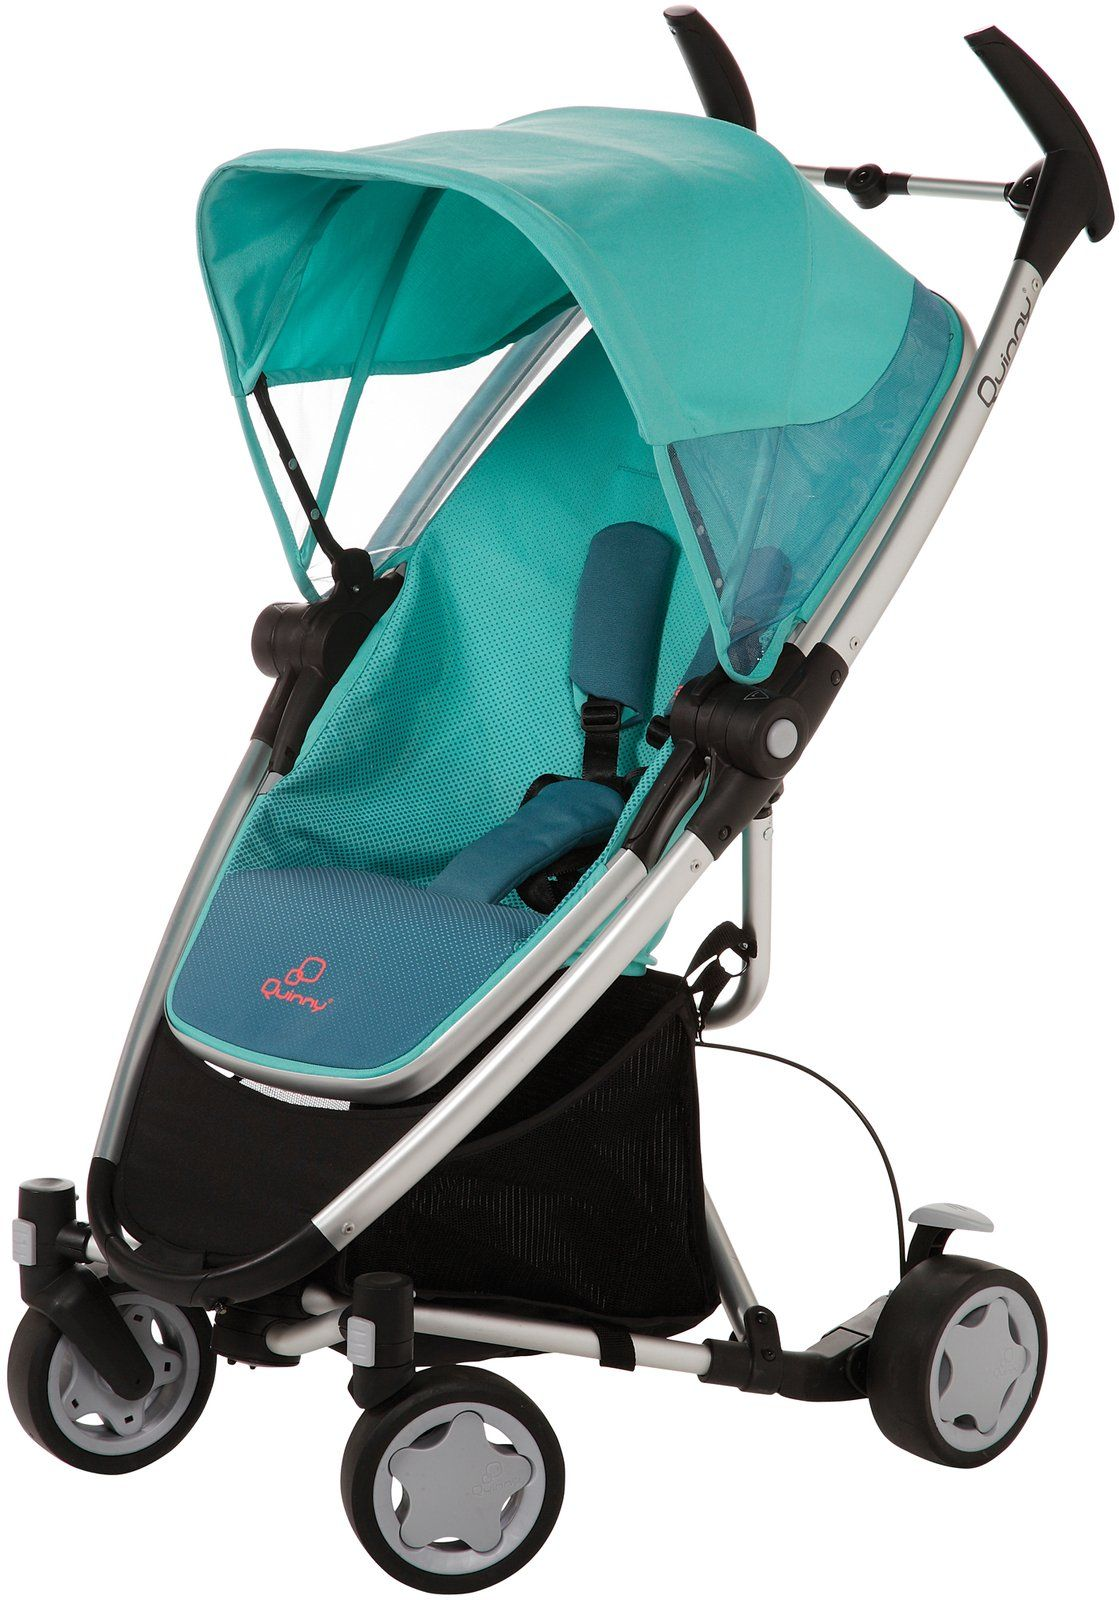 Quinny Zapp Xtra Fading Green Best Price (With images